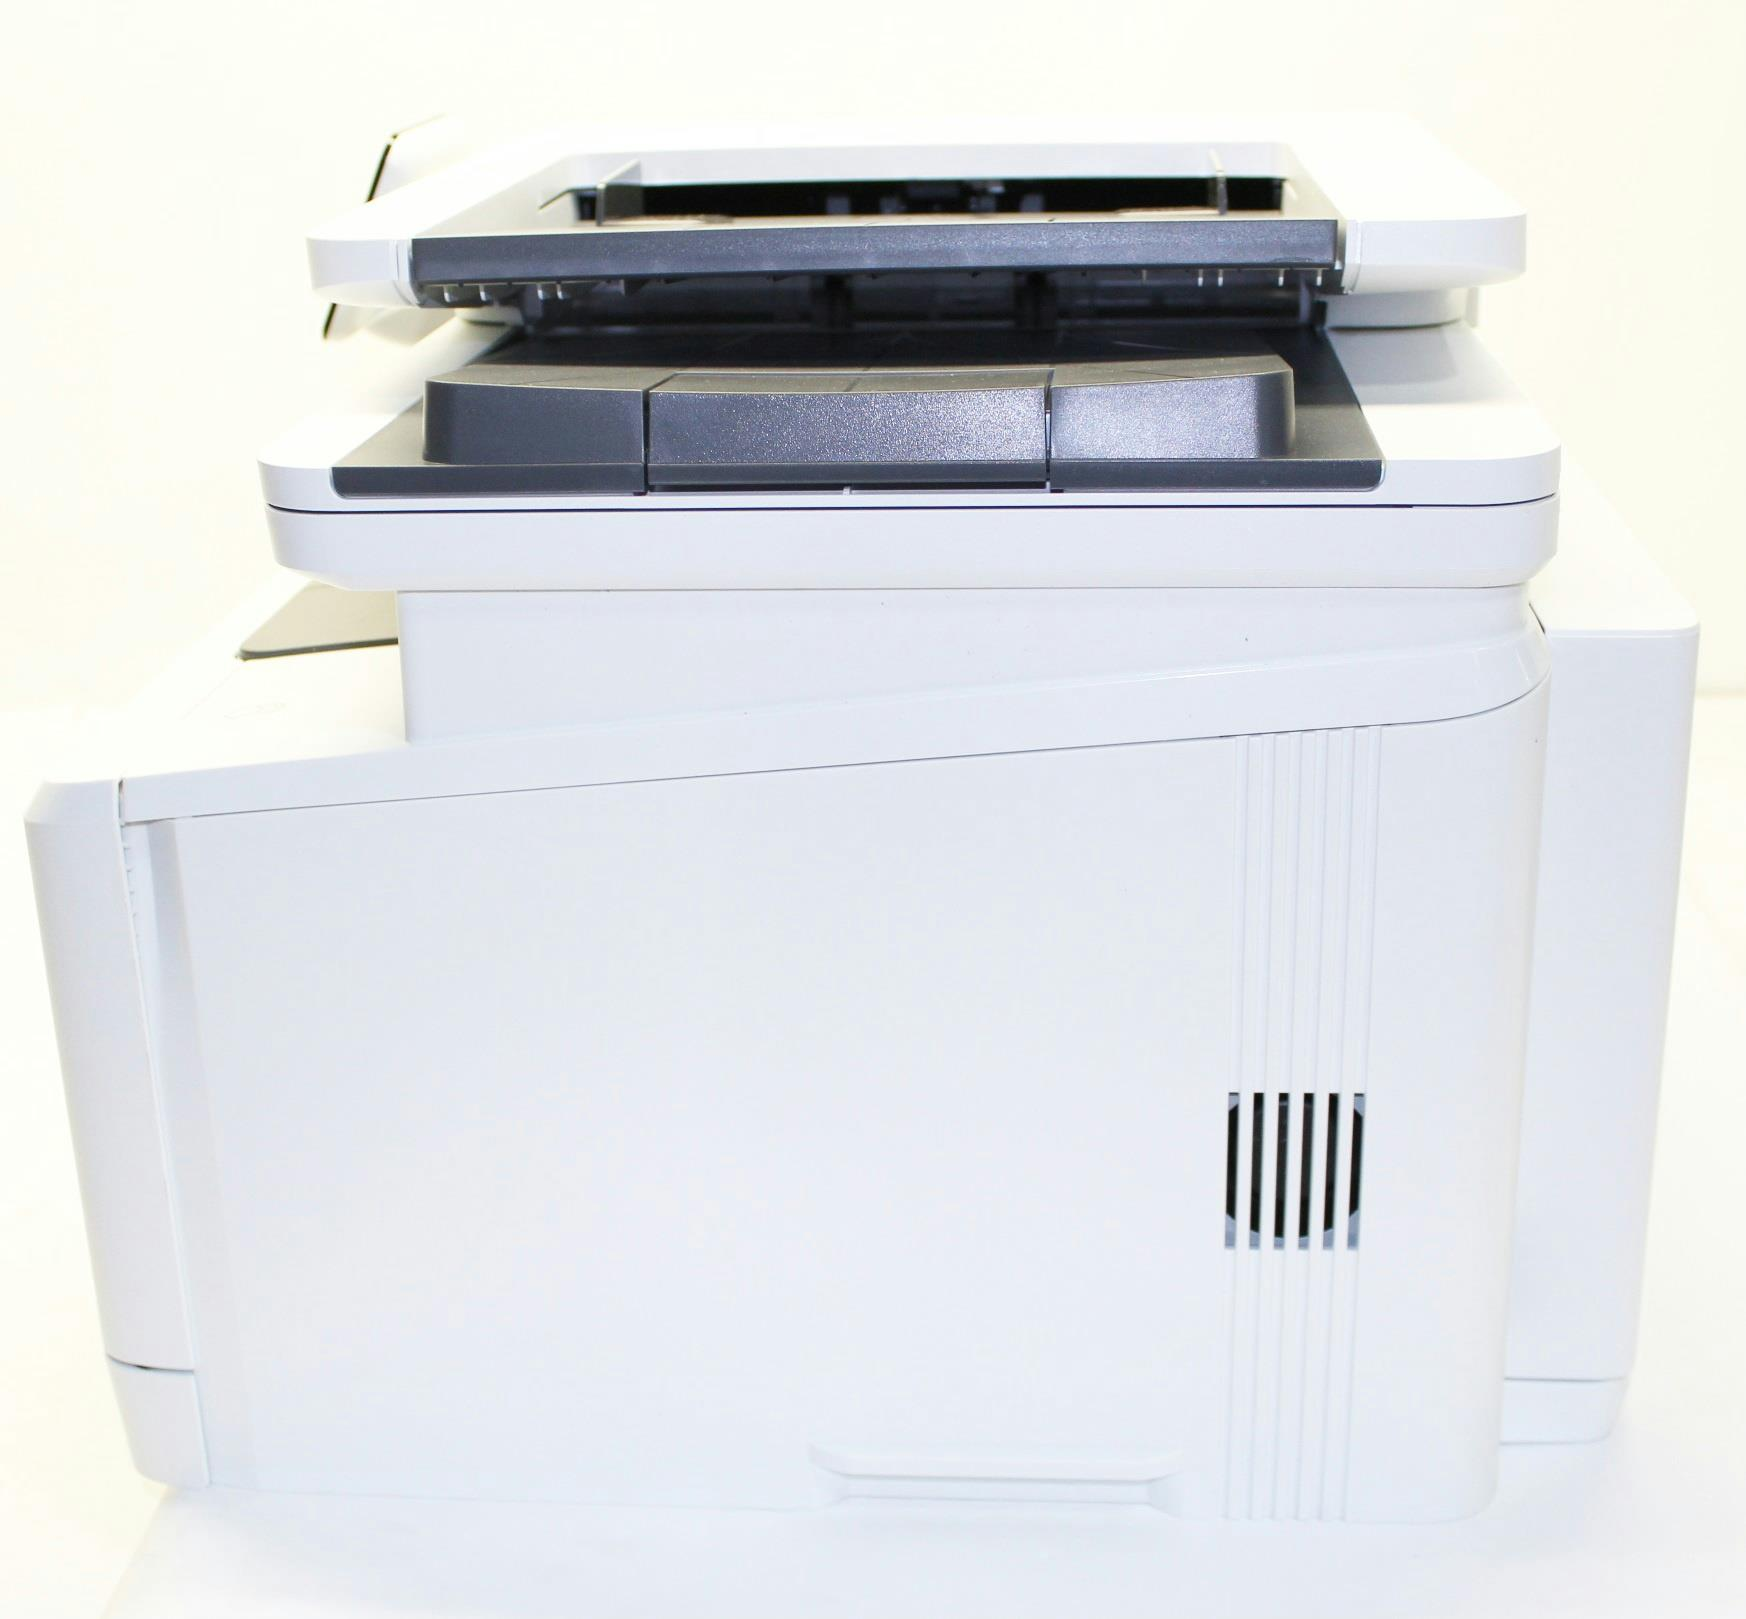 hp color laserjet pro mfp m277dw printer b3q11a bgj 800142233 ebay. Black Bedroom Furniture Sets. Home Design Ideas